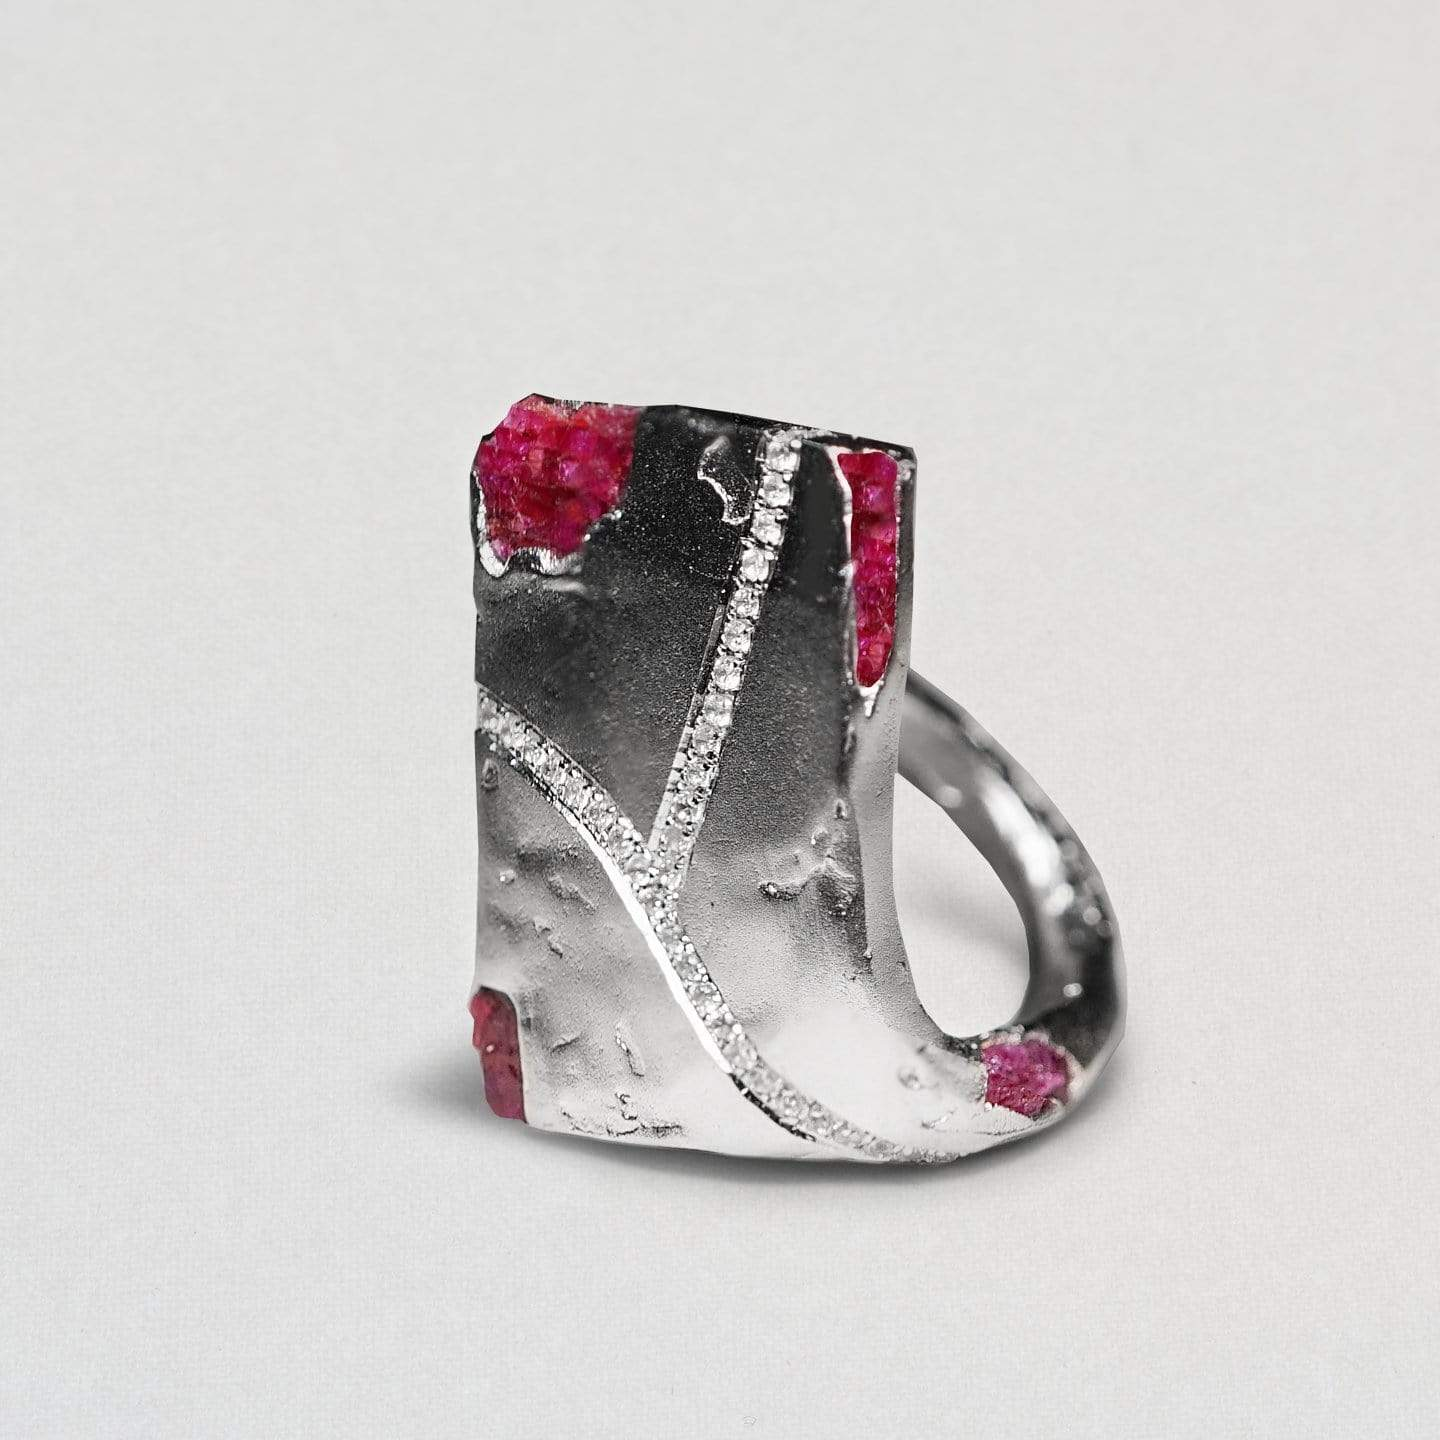 Mae Ring, Exclusive, Rhodium, Ruby, Sapphire, silver, spo-disabled, StoneColor:PinkRuby, Style:Statement Ring